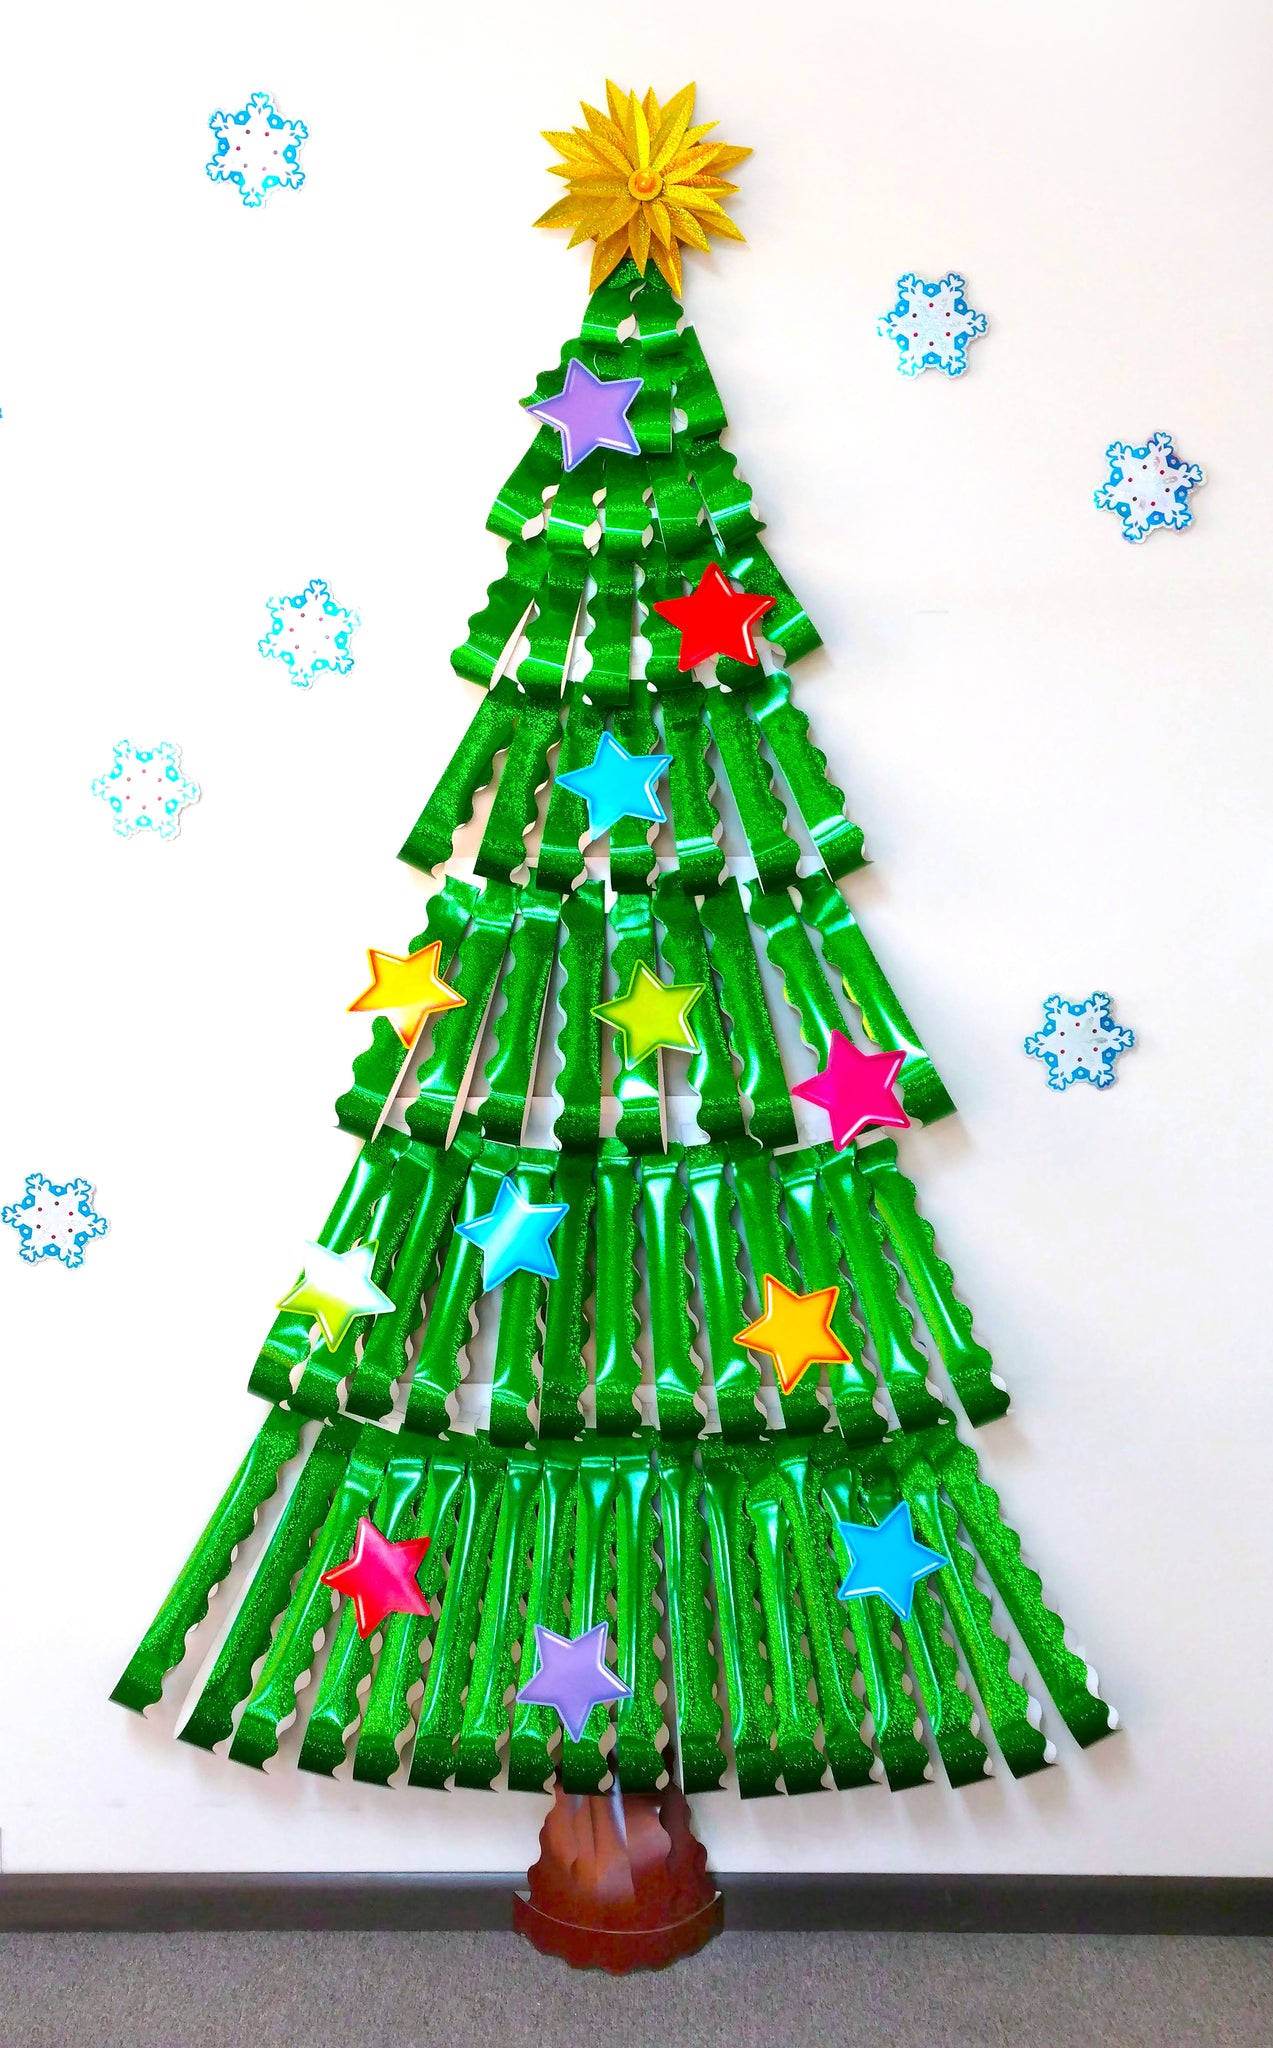 Christmas tree classroom wall decoration made from sparkle trimmers.